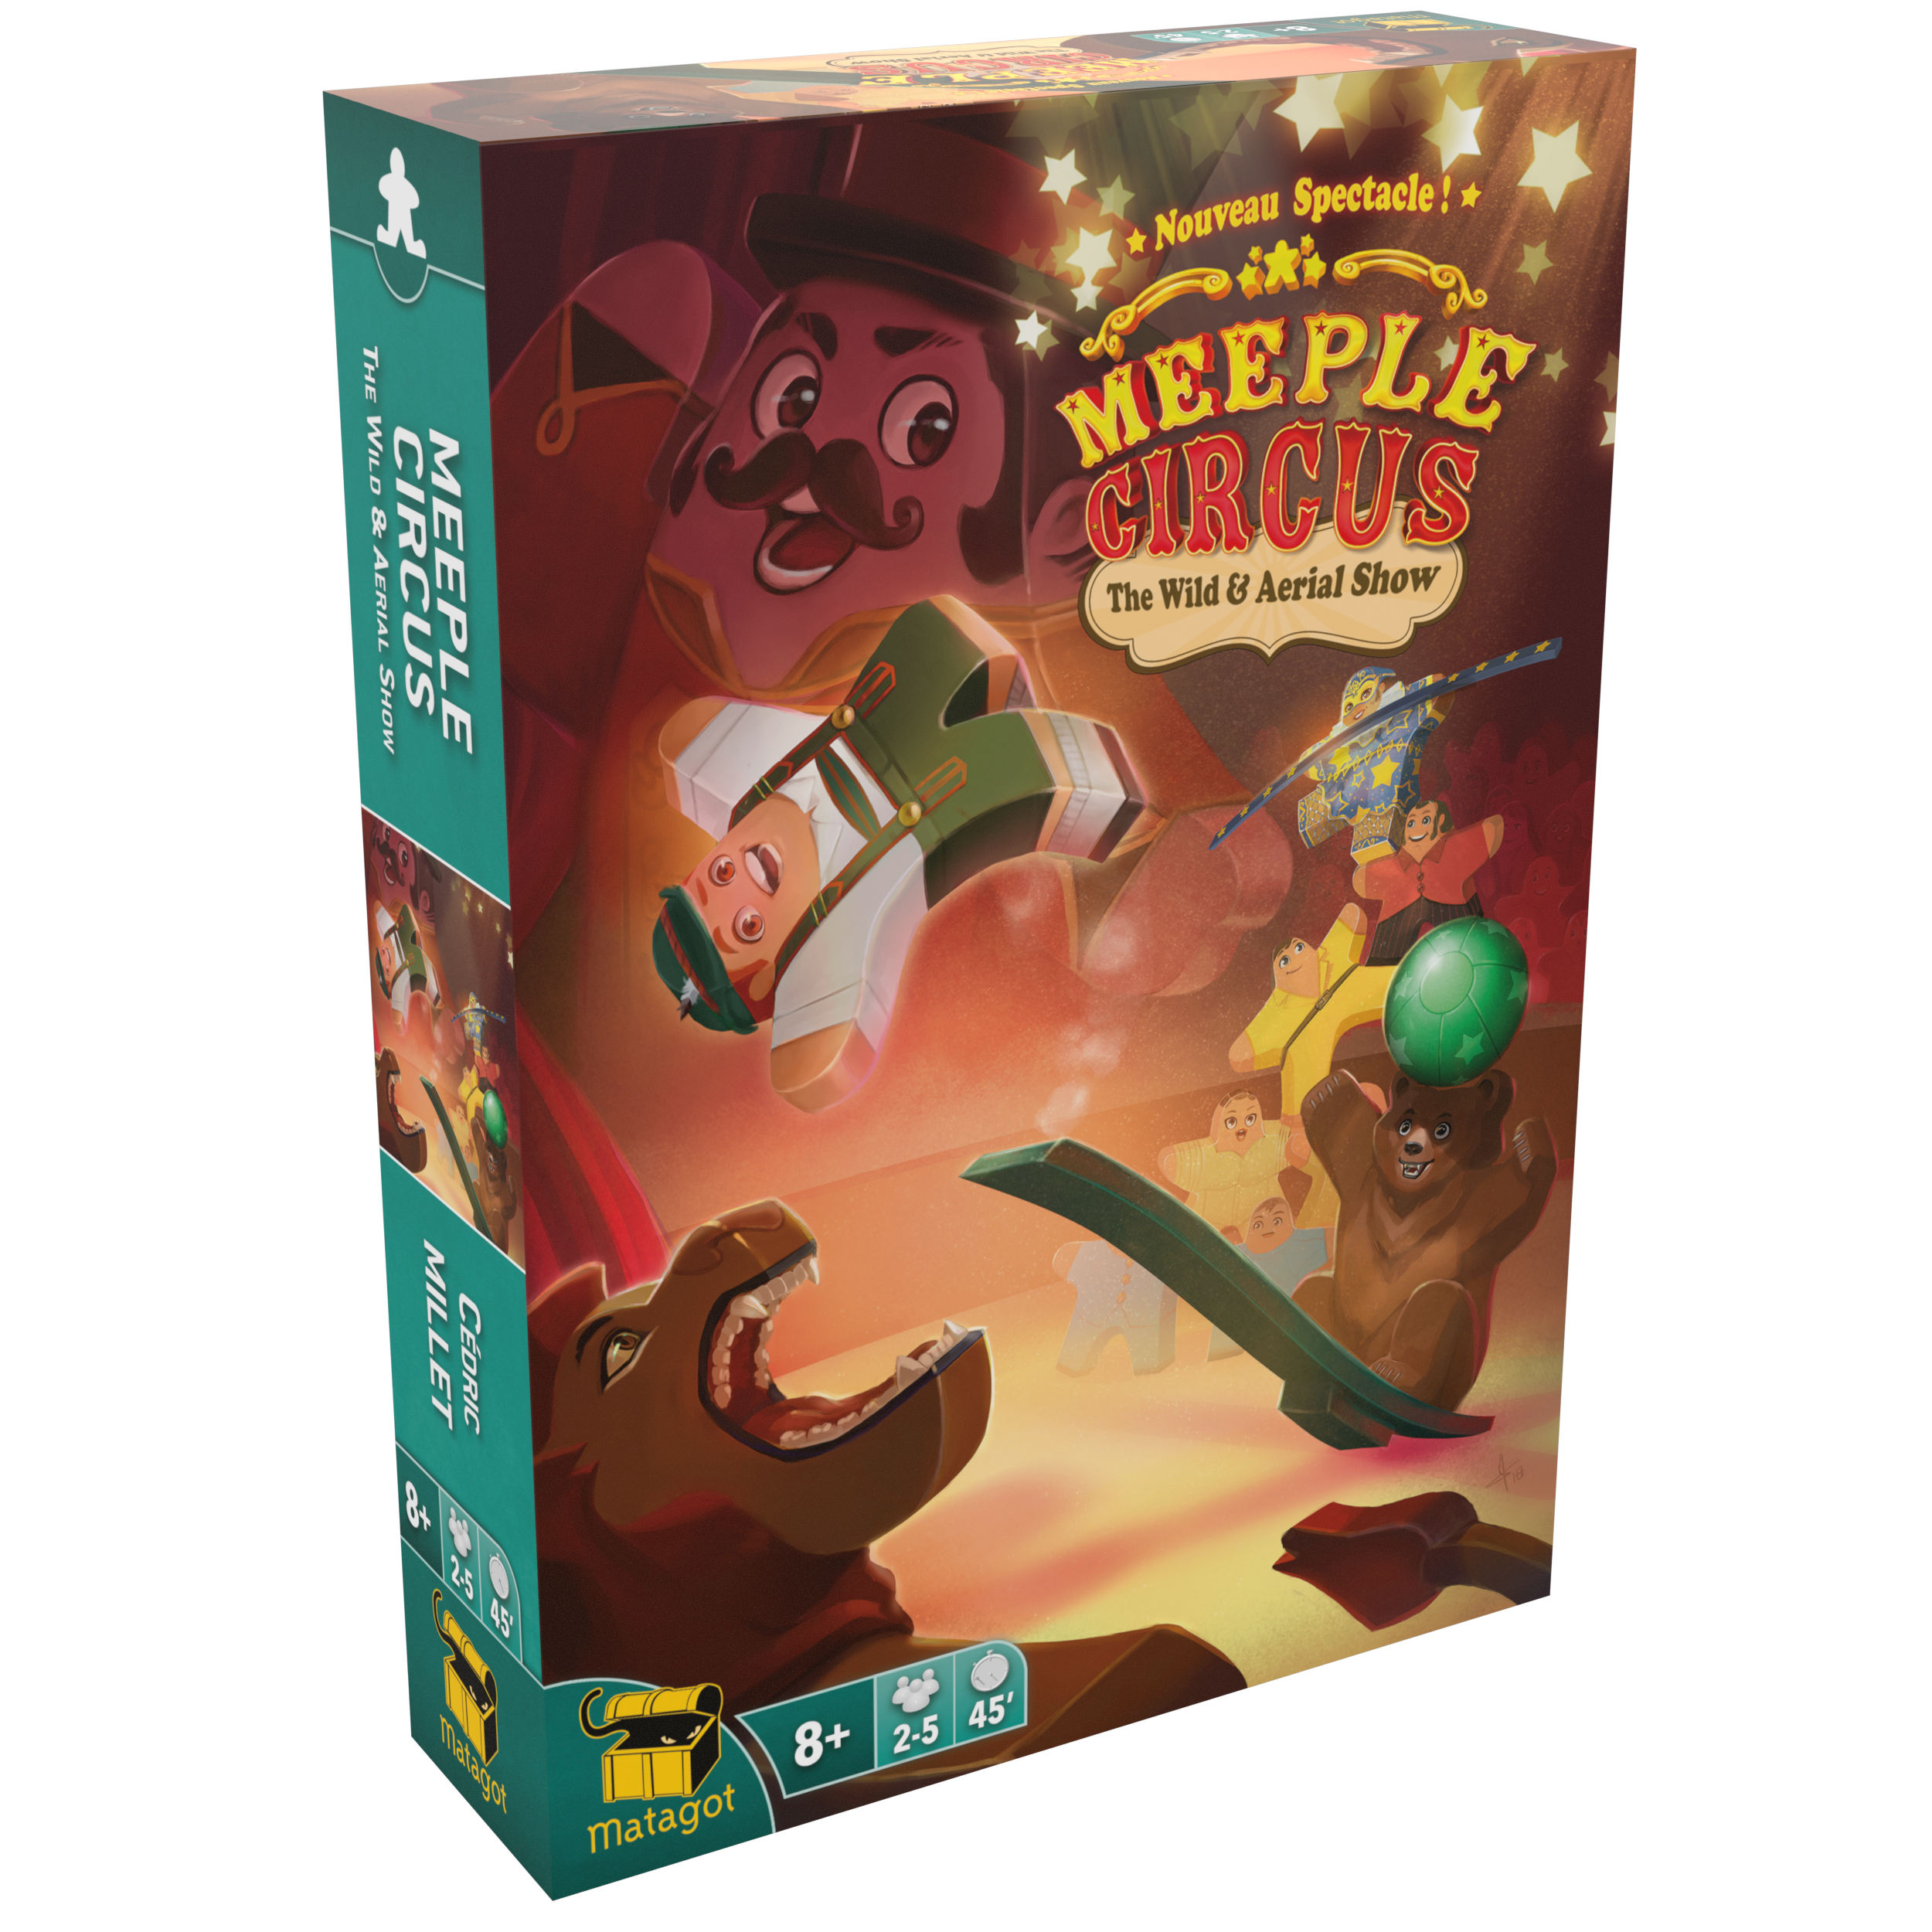 MEEPLE CIRCUS  The Wild Animal & Aerial Show